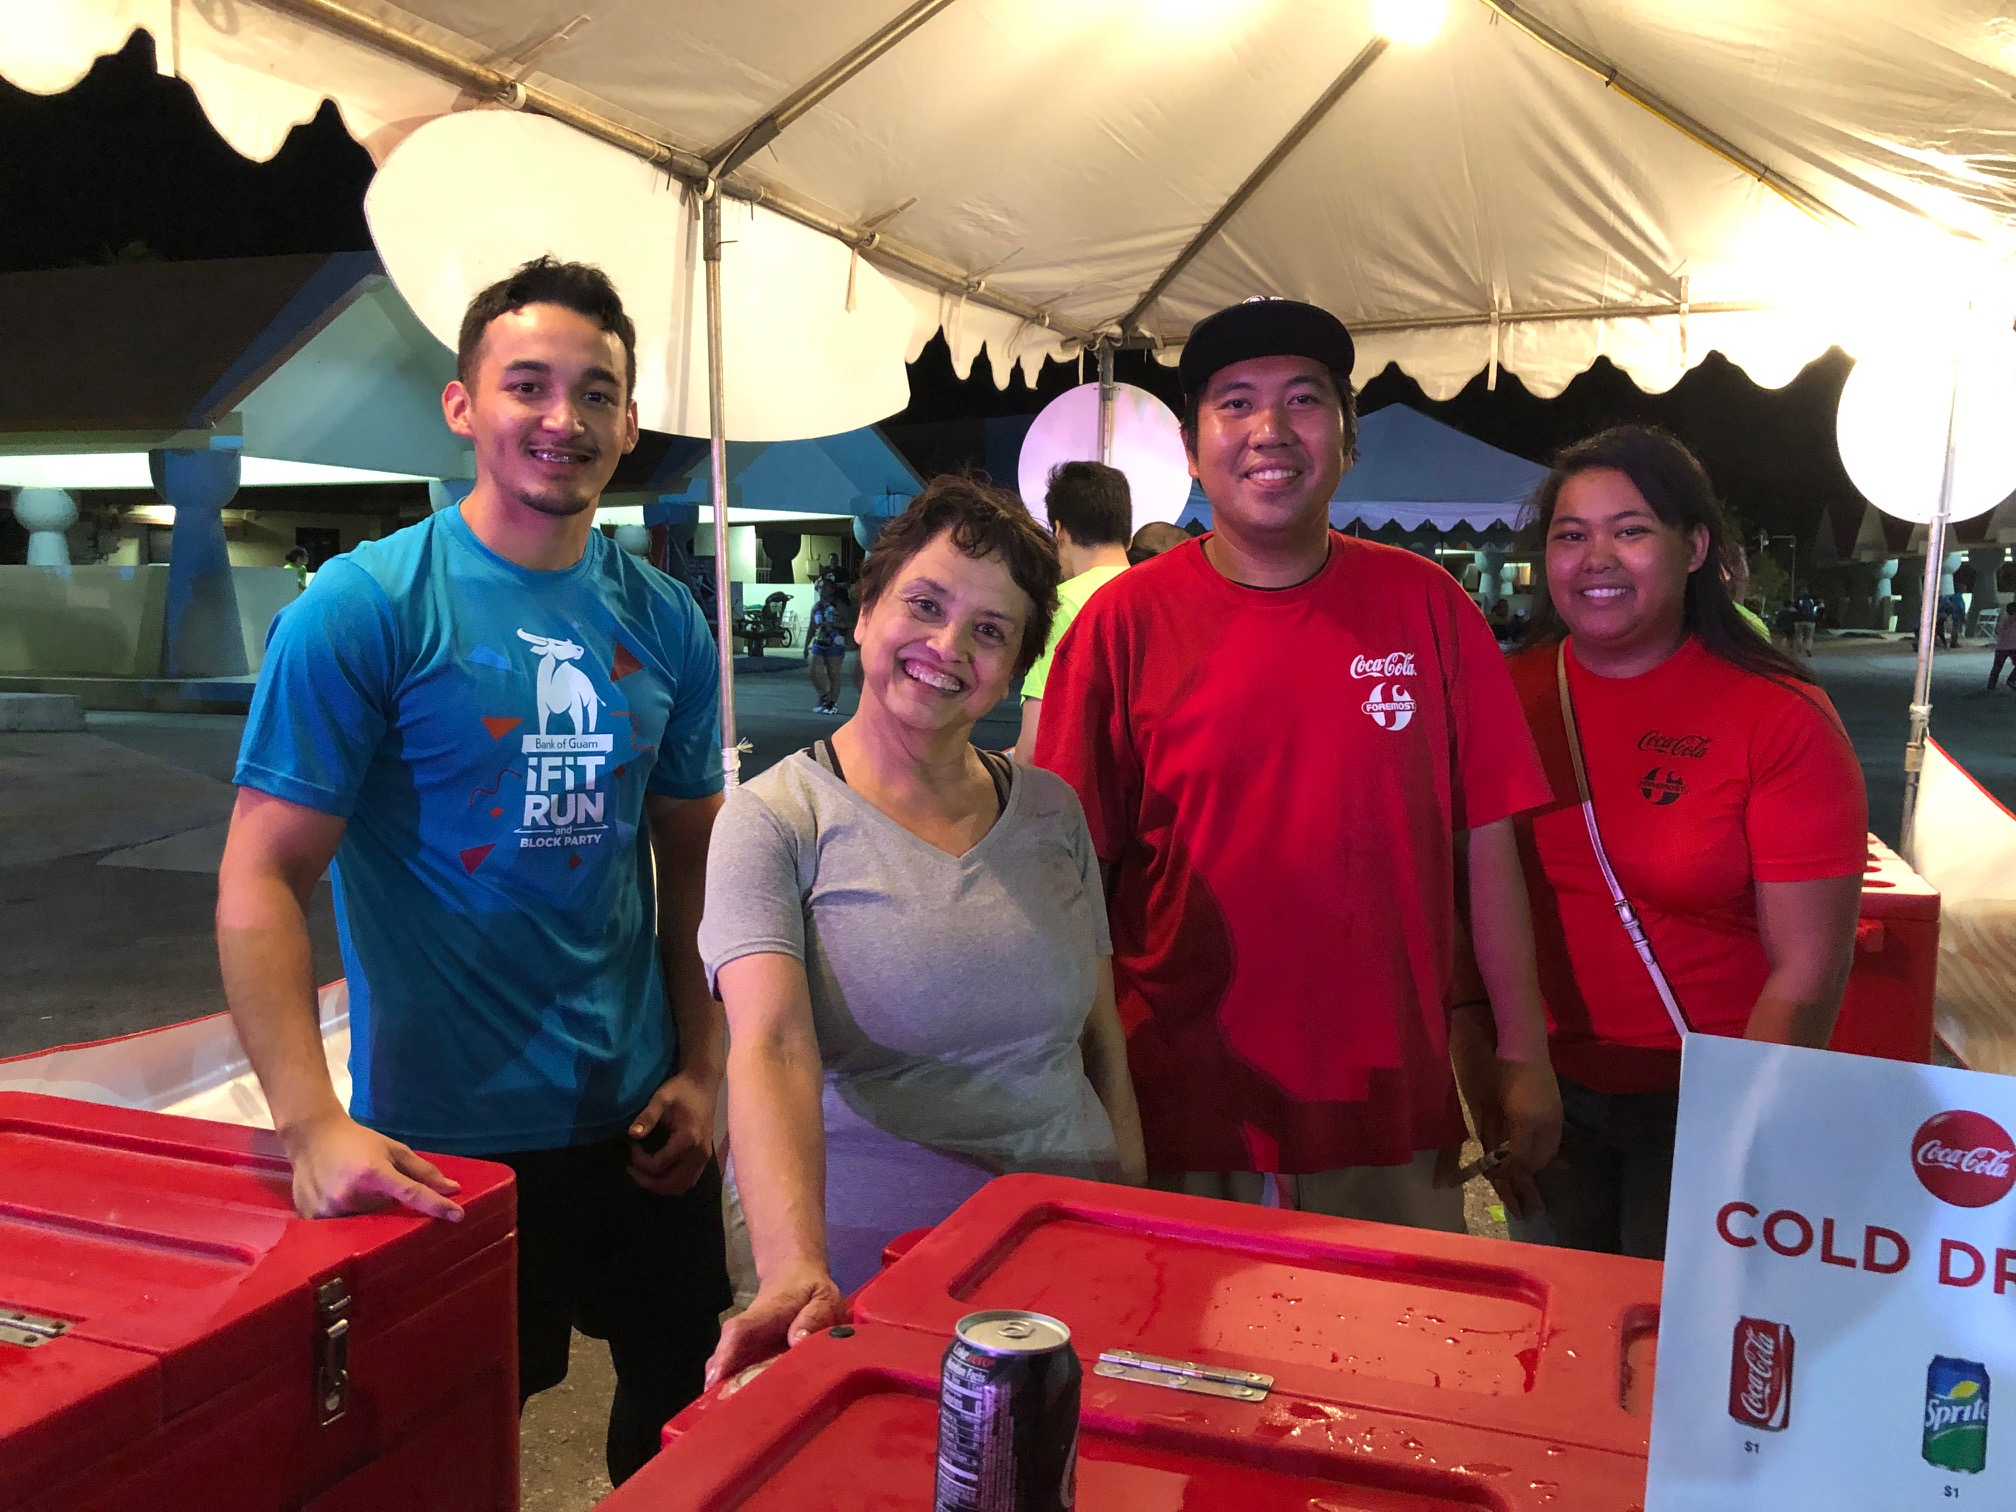 Coca-Cola and Powerade hydrate <br>Bank of Guam Block Party and Ifit Race